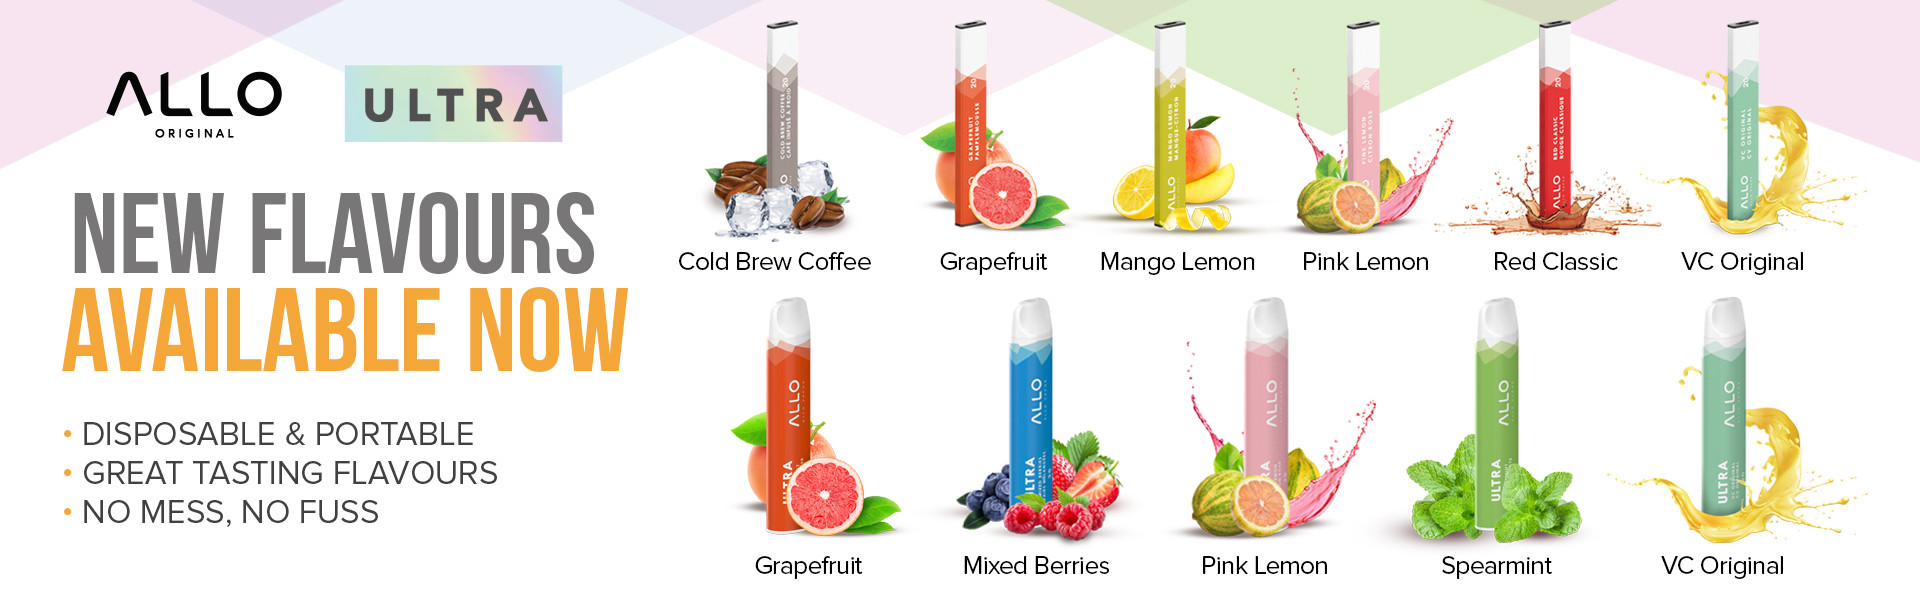 Allo Web Banner New Flavours Available N